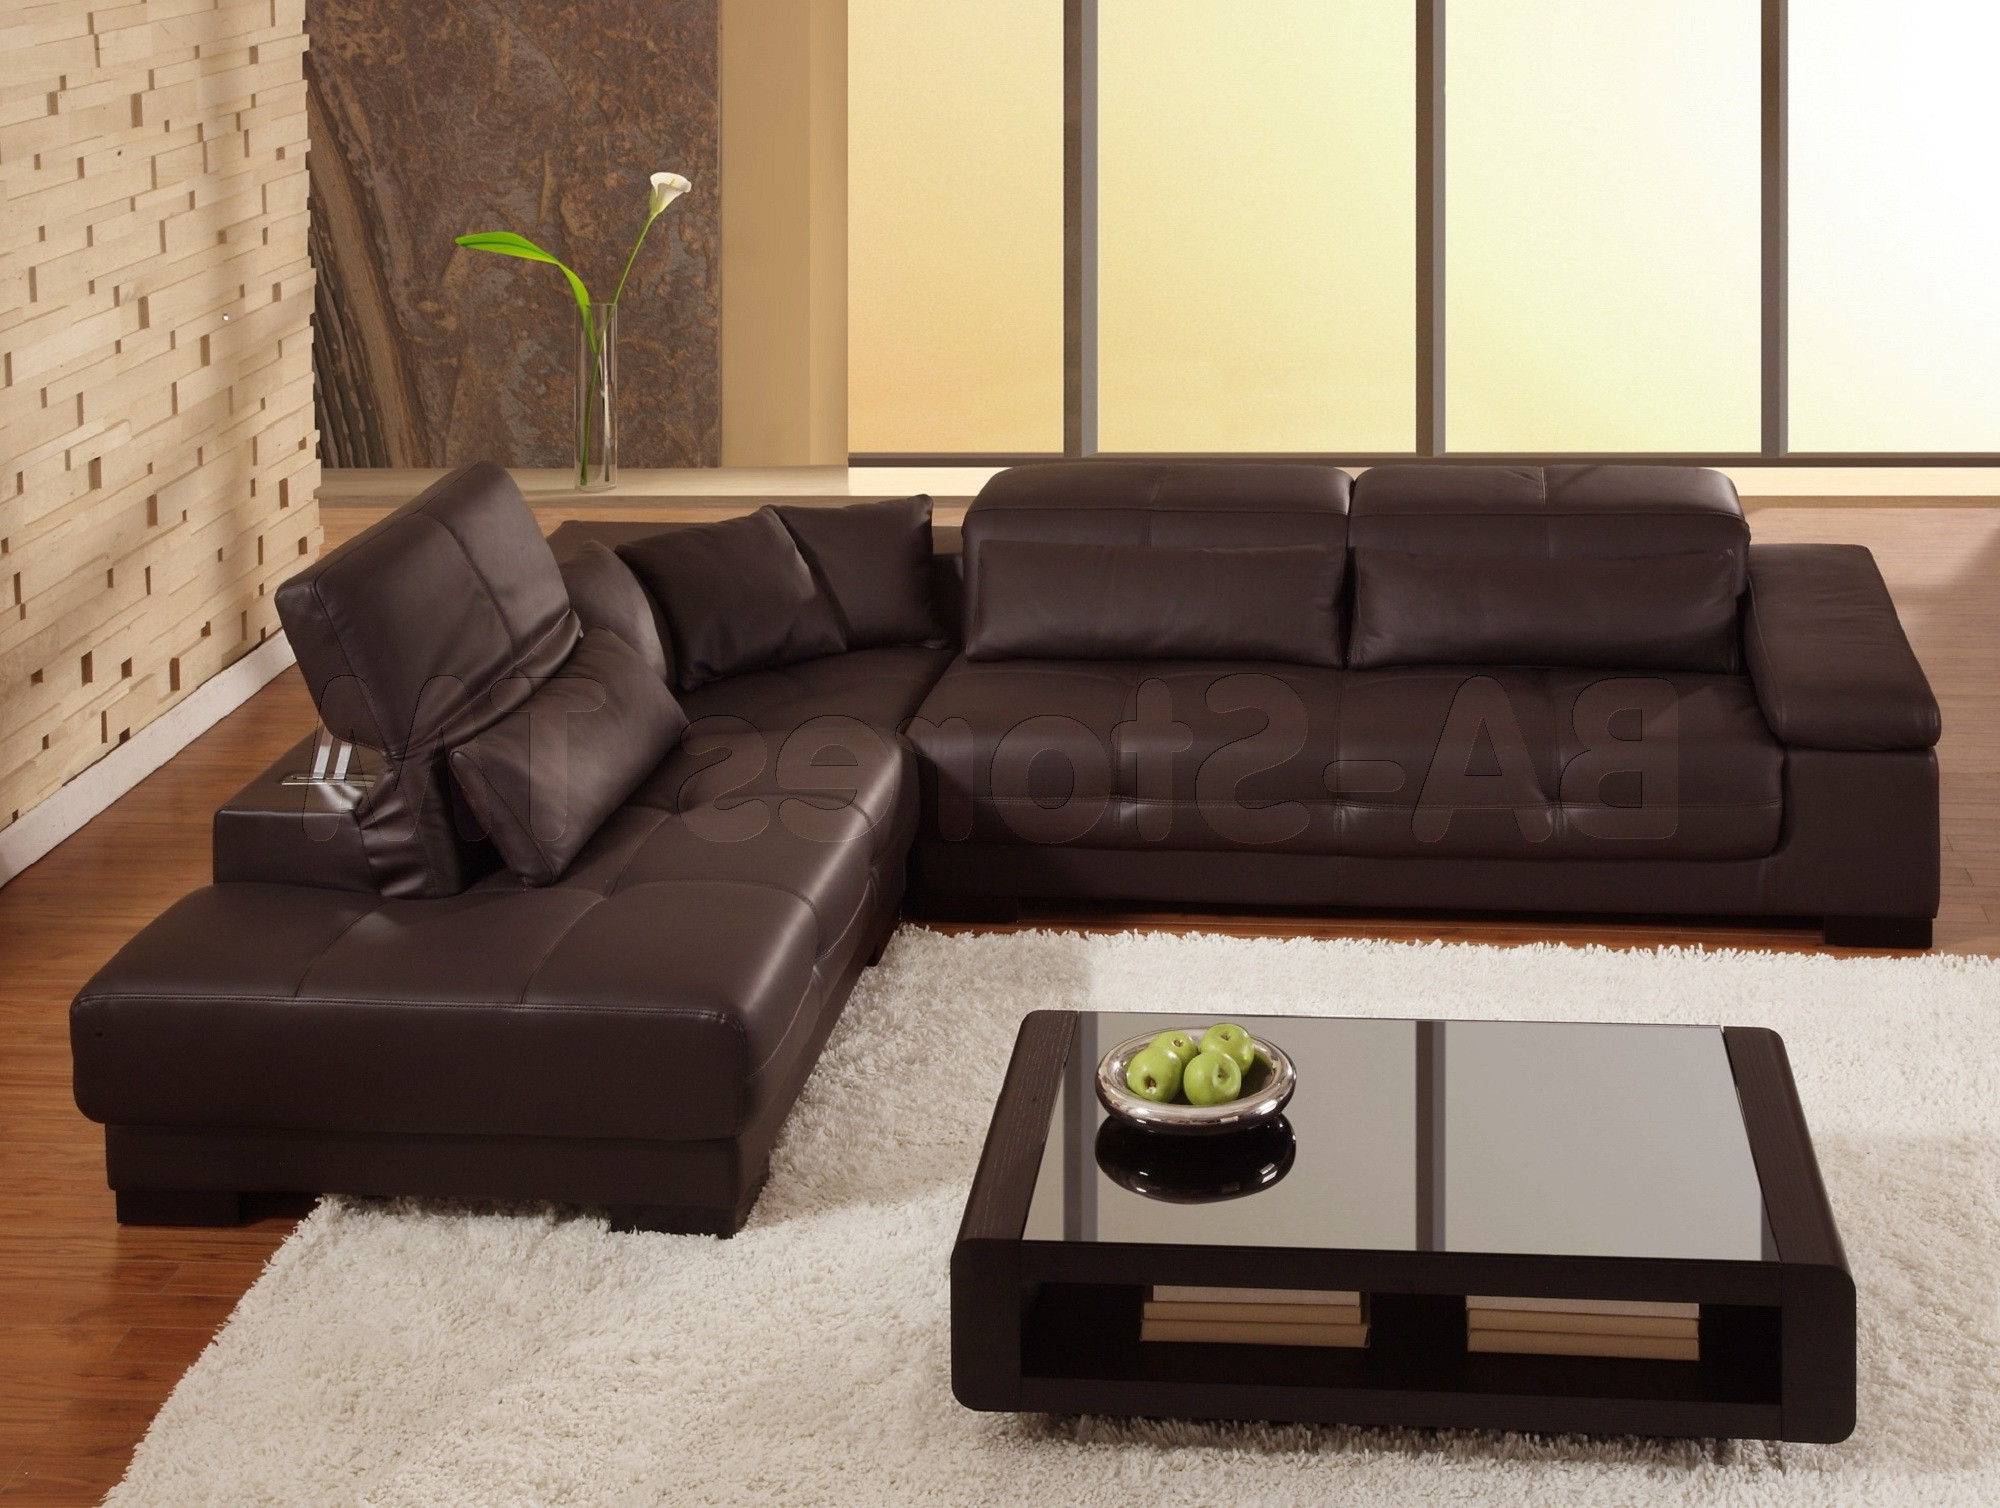 Sectional Sofas At Edmonton Regarding Fashionable Sectional Sofas Edmonton Kijiji Living Room Furniture Edmonton (View 17 of 20)